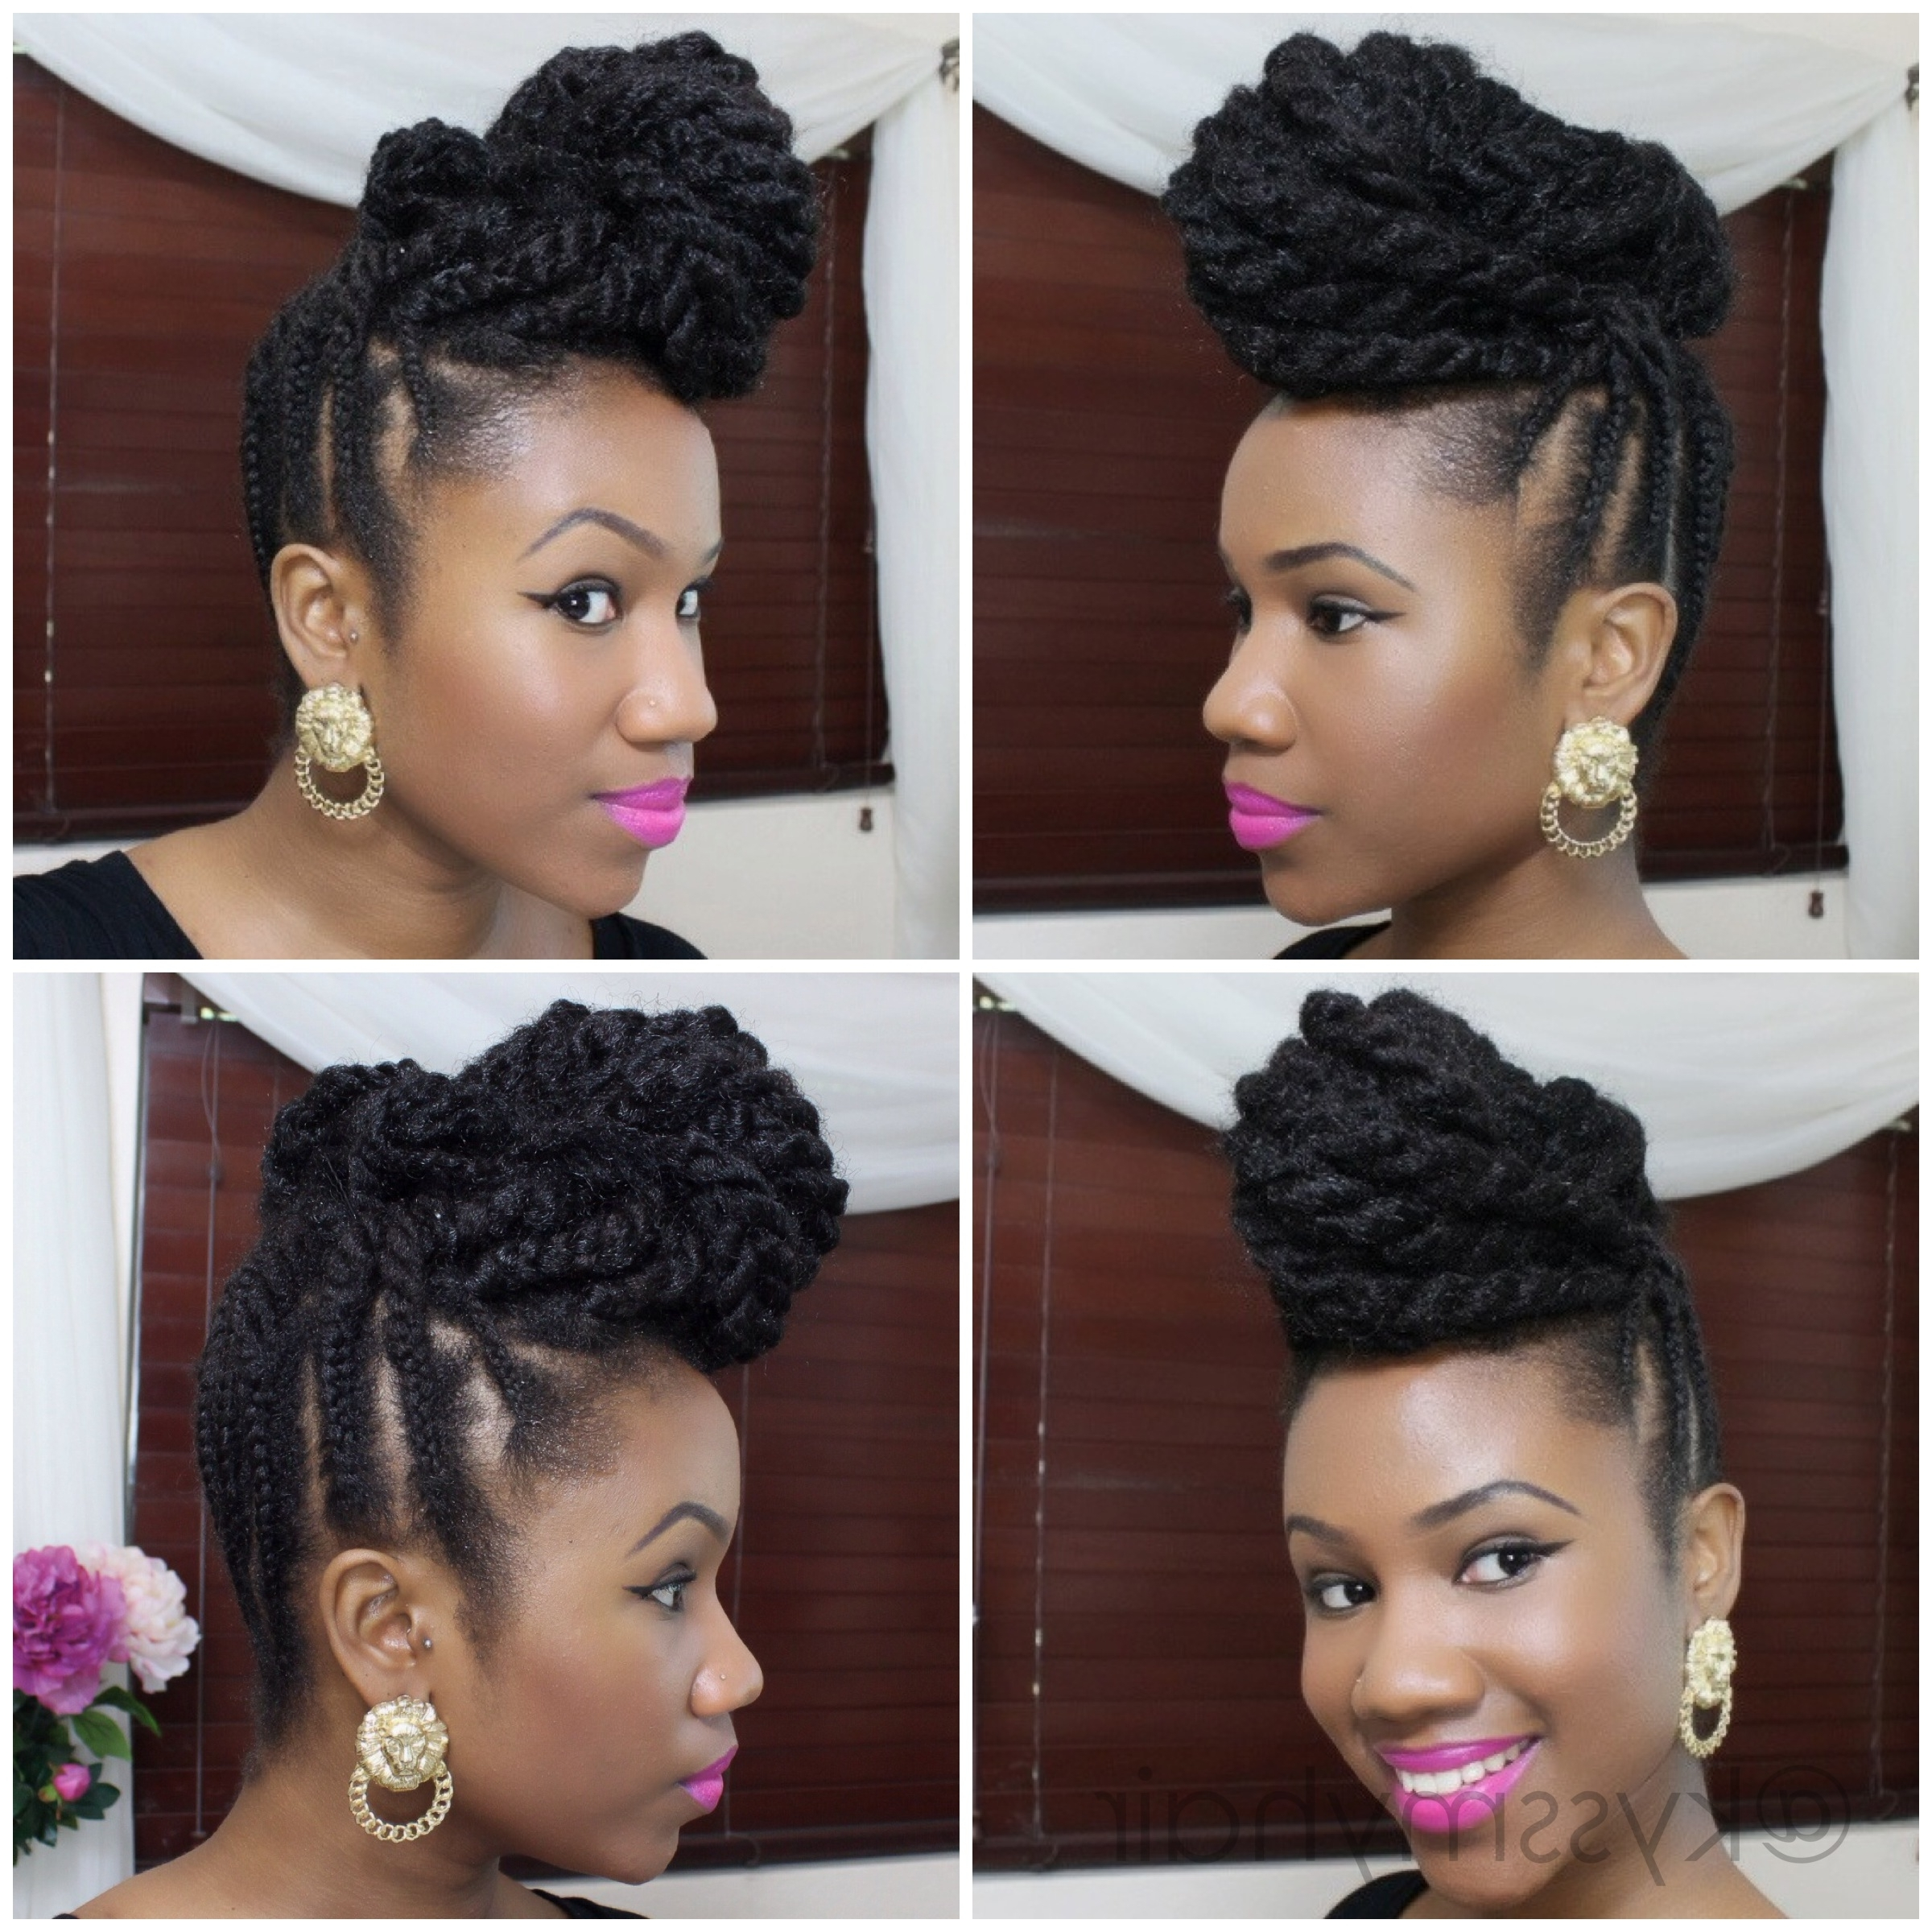 New Braided Updo Hairstyles For Natural Hair 88 Ideas With Braided Within Updo Hairstyles With Braiding Hair (View 9 of 15)